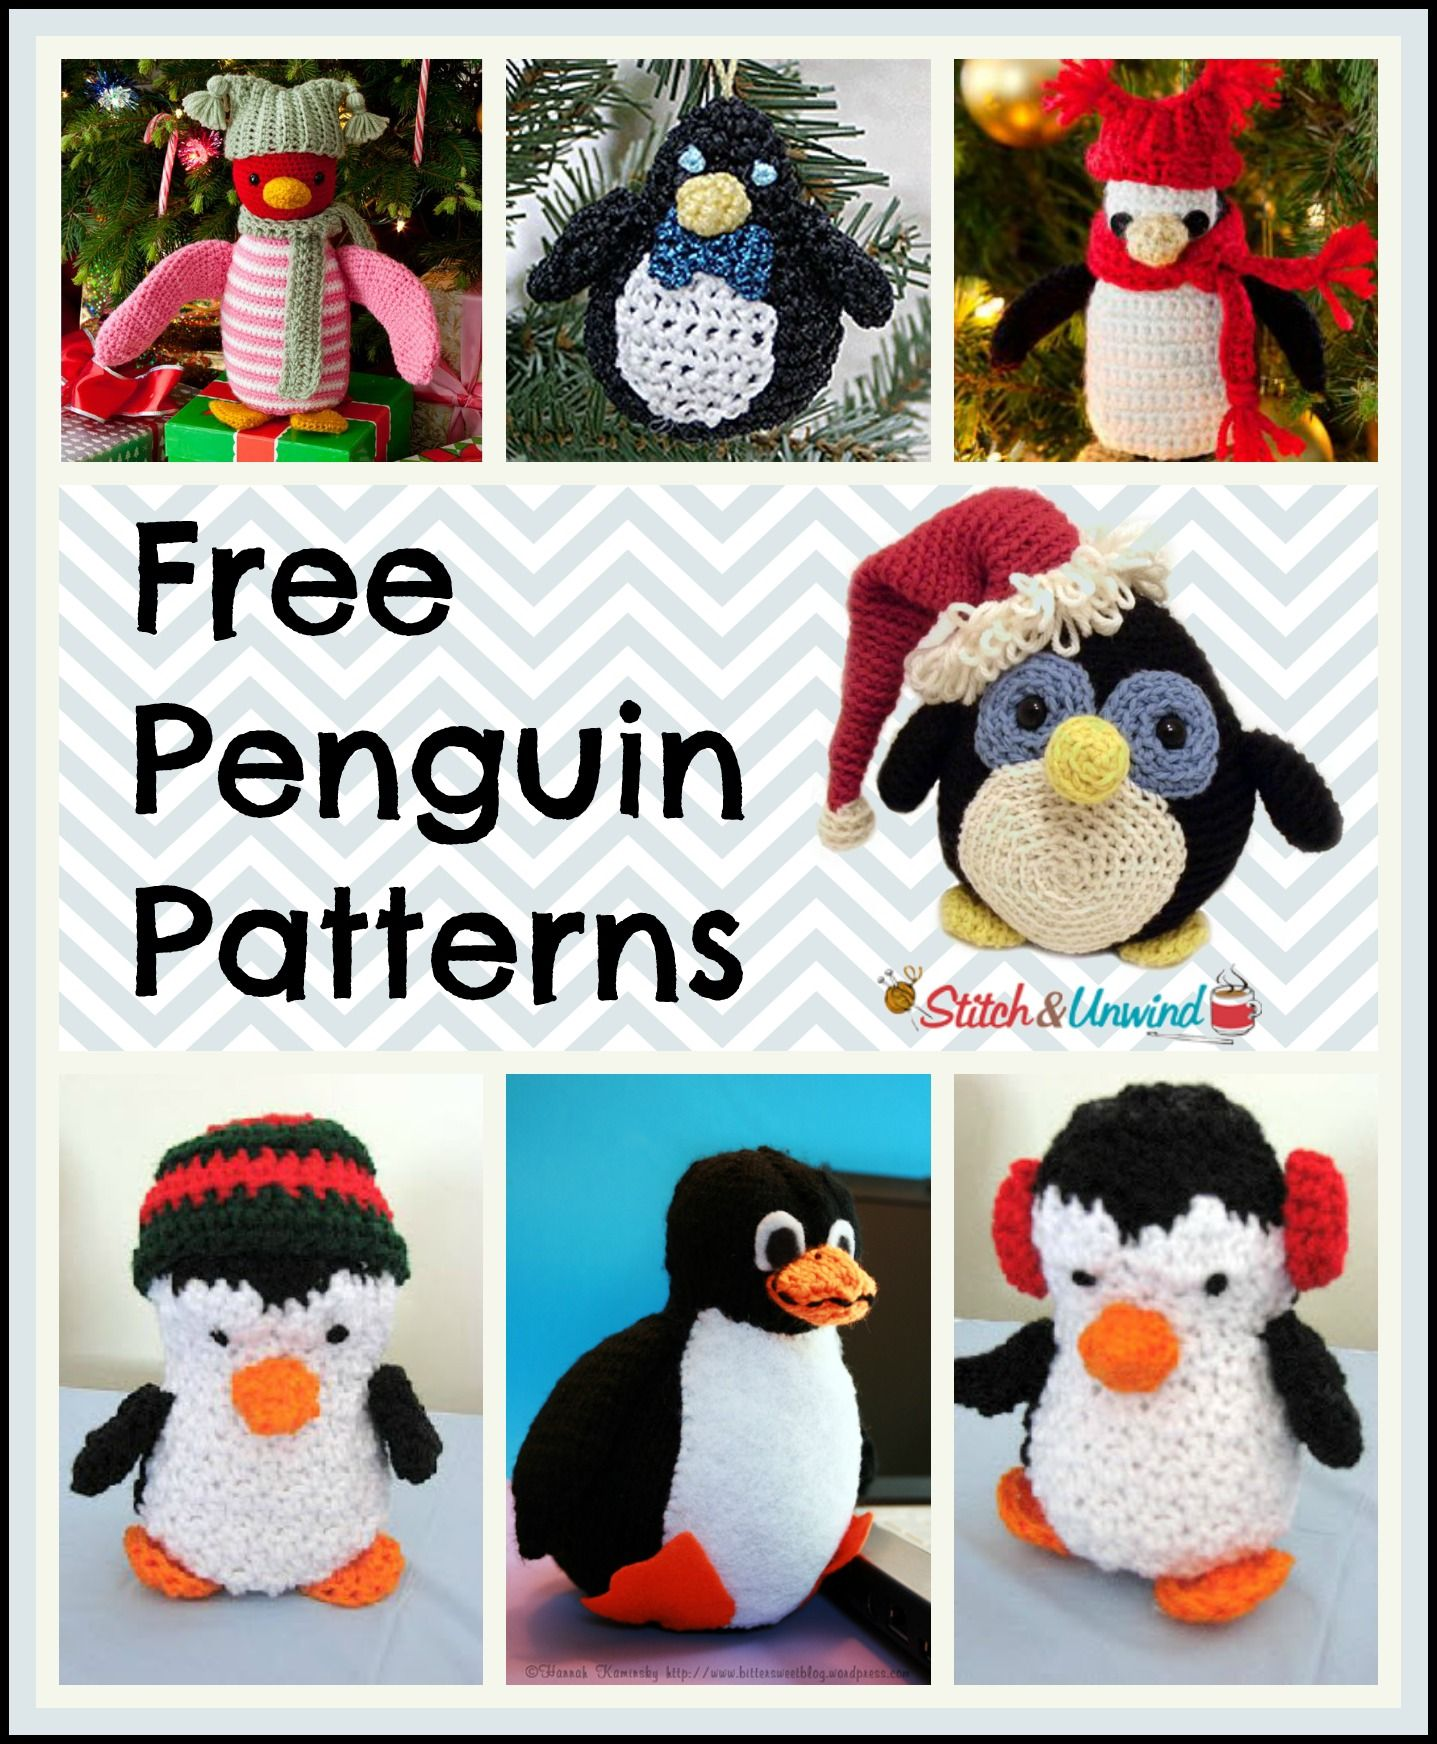 March of the Yarn Penguins: Crochet & Knit a Happy Penguin | Happy ...